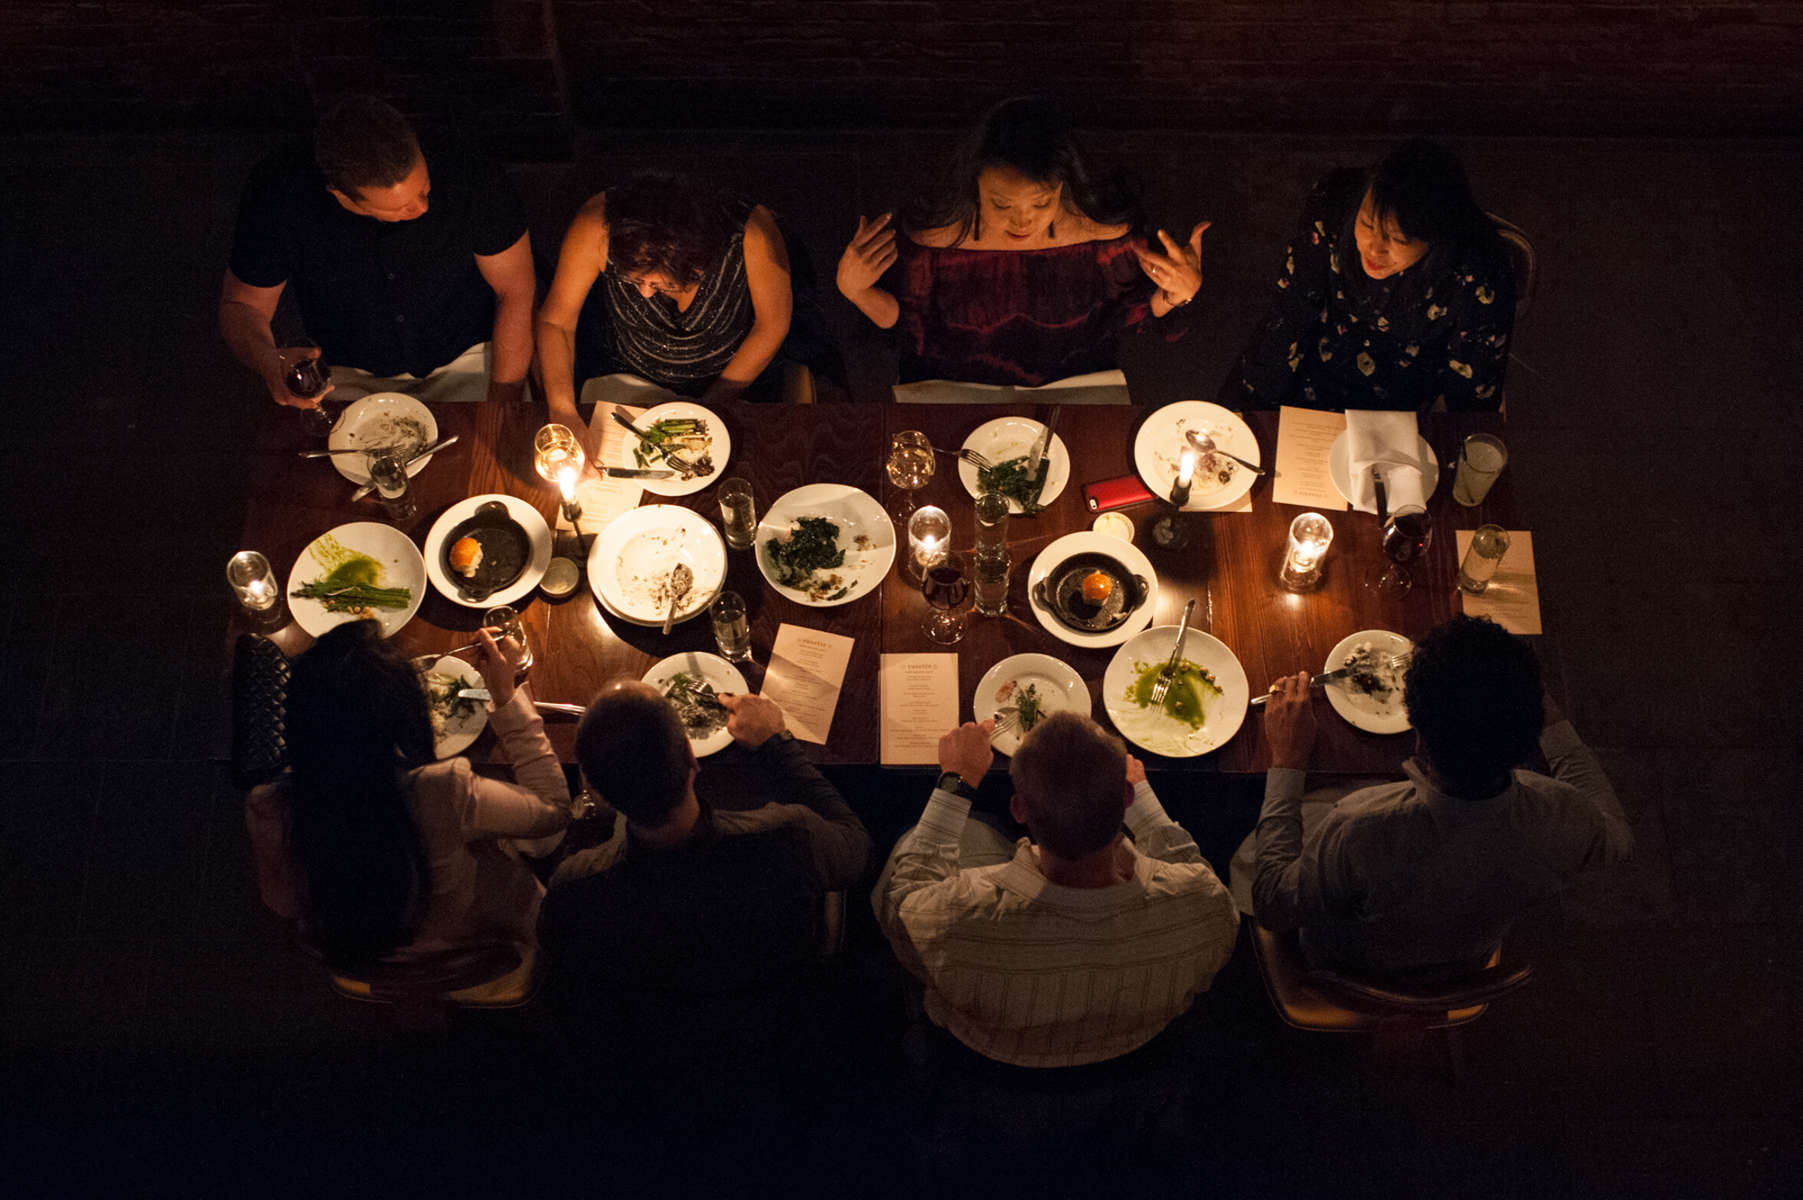 At the back of Rosette, a Contemporary American restaurant on the Lower East Side, there is a space available for private parties, equipped with a bar, dining space, private entrance and projector and screen offering an intimate dining experience. (Apr. 19, 2014)Photo by Nancy Borowick